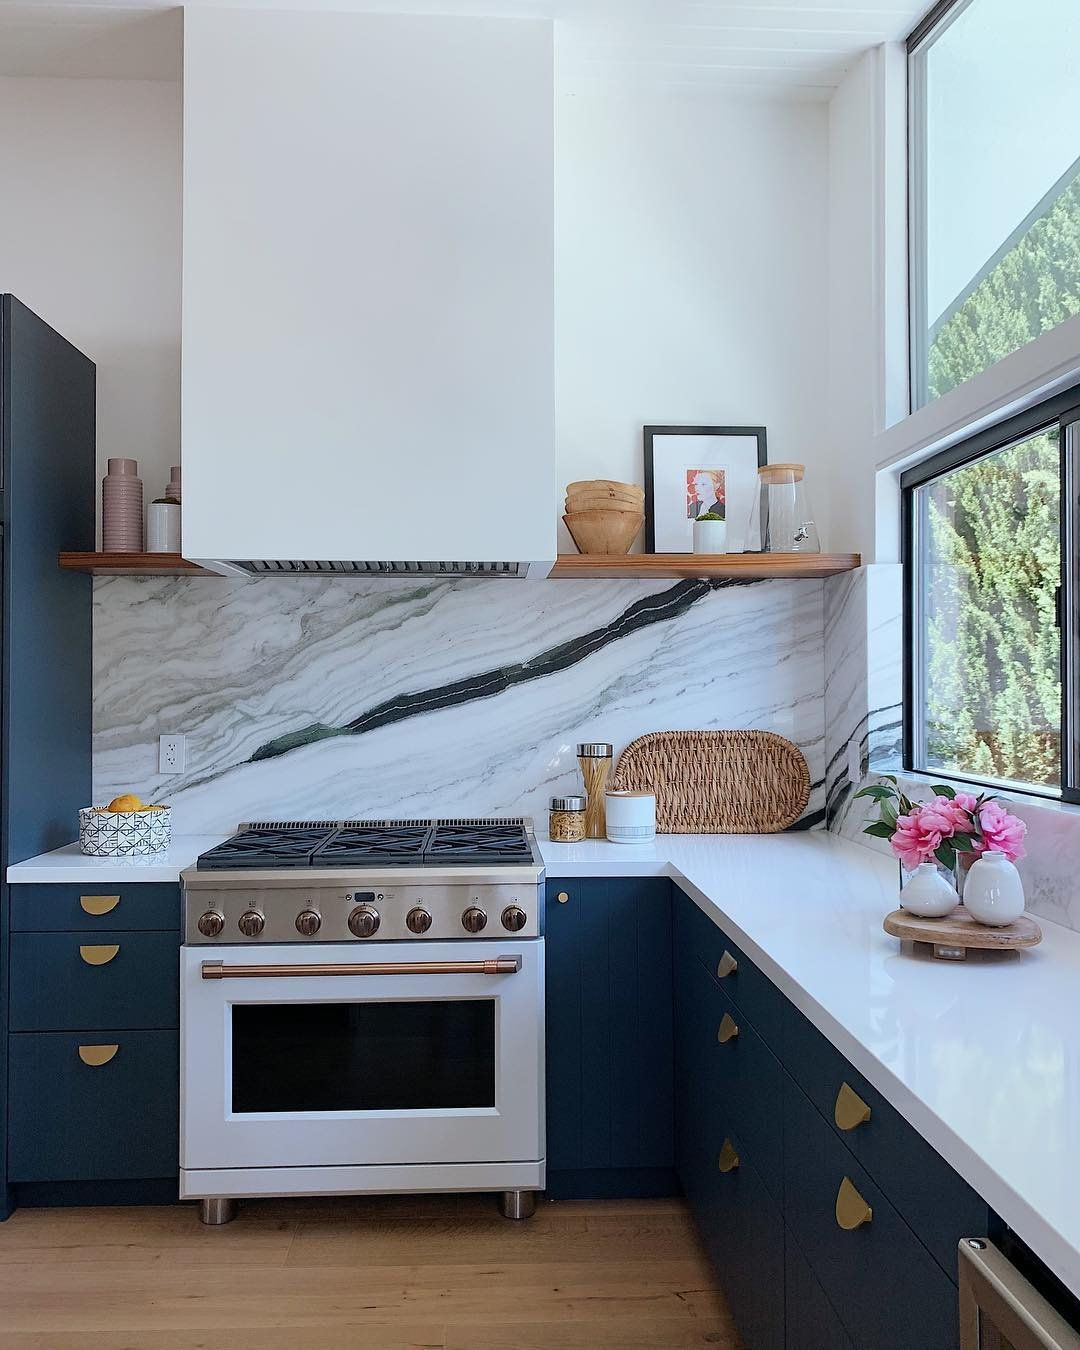 Talk About A Statement Backsplash This Kitchen By Rebecca Raskind Is Just Gorgeous All Thanks To The Show Stopping New Kitchen Kitchen Plans Kitchen Remodel